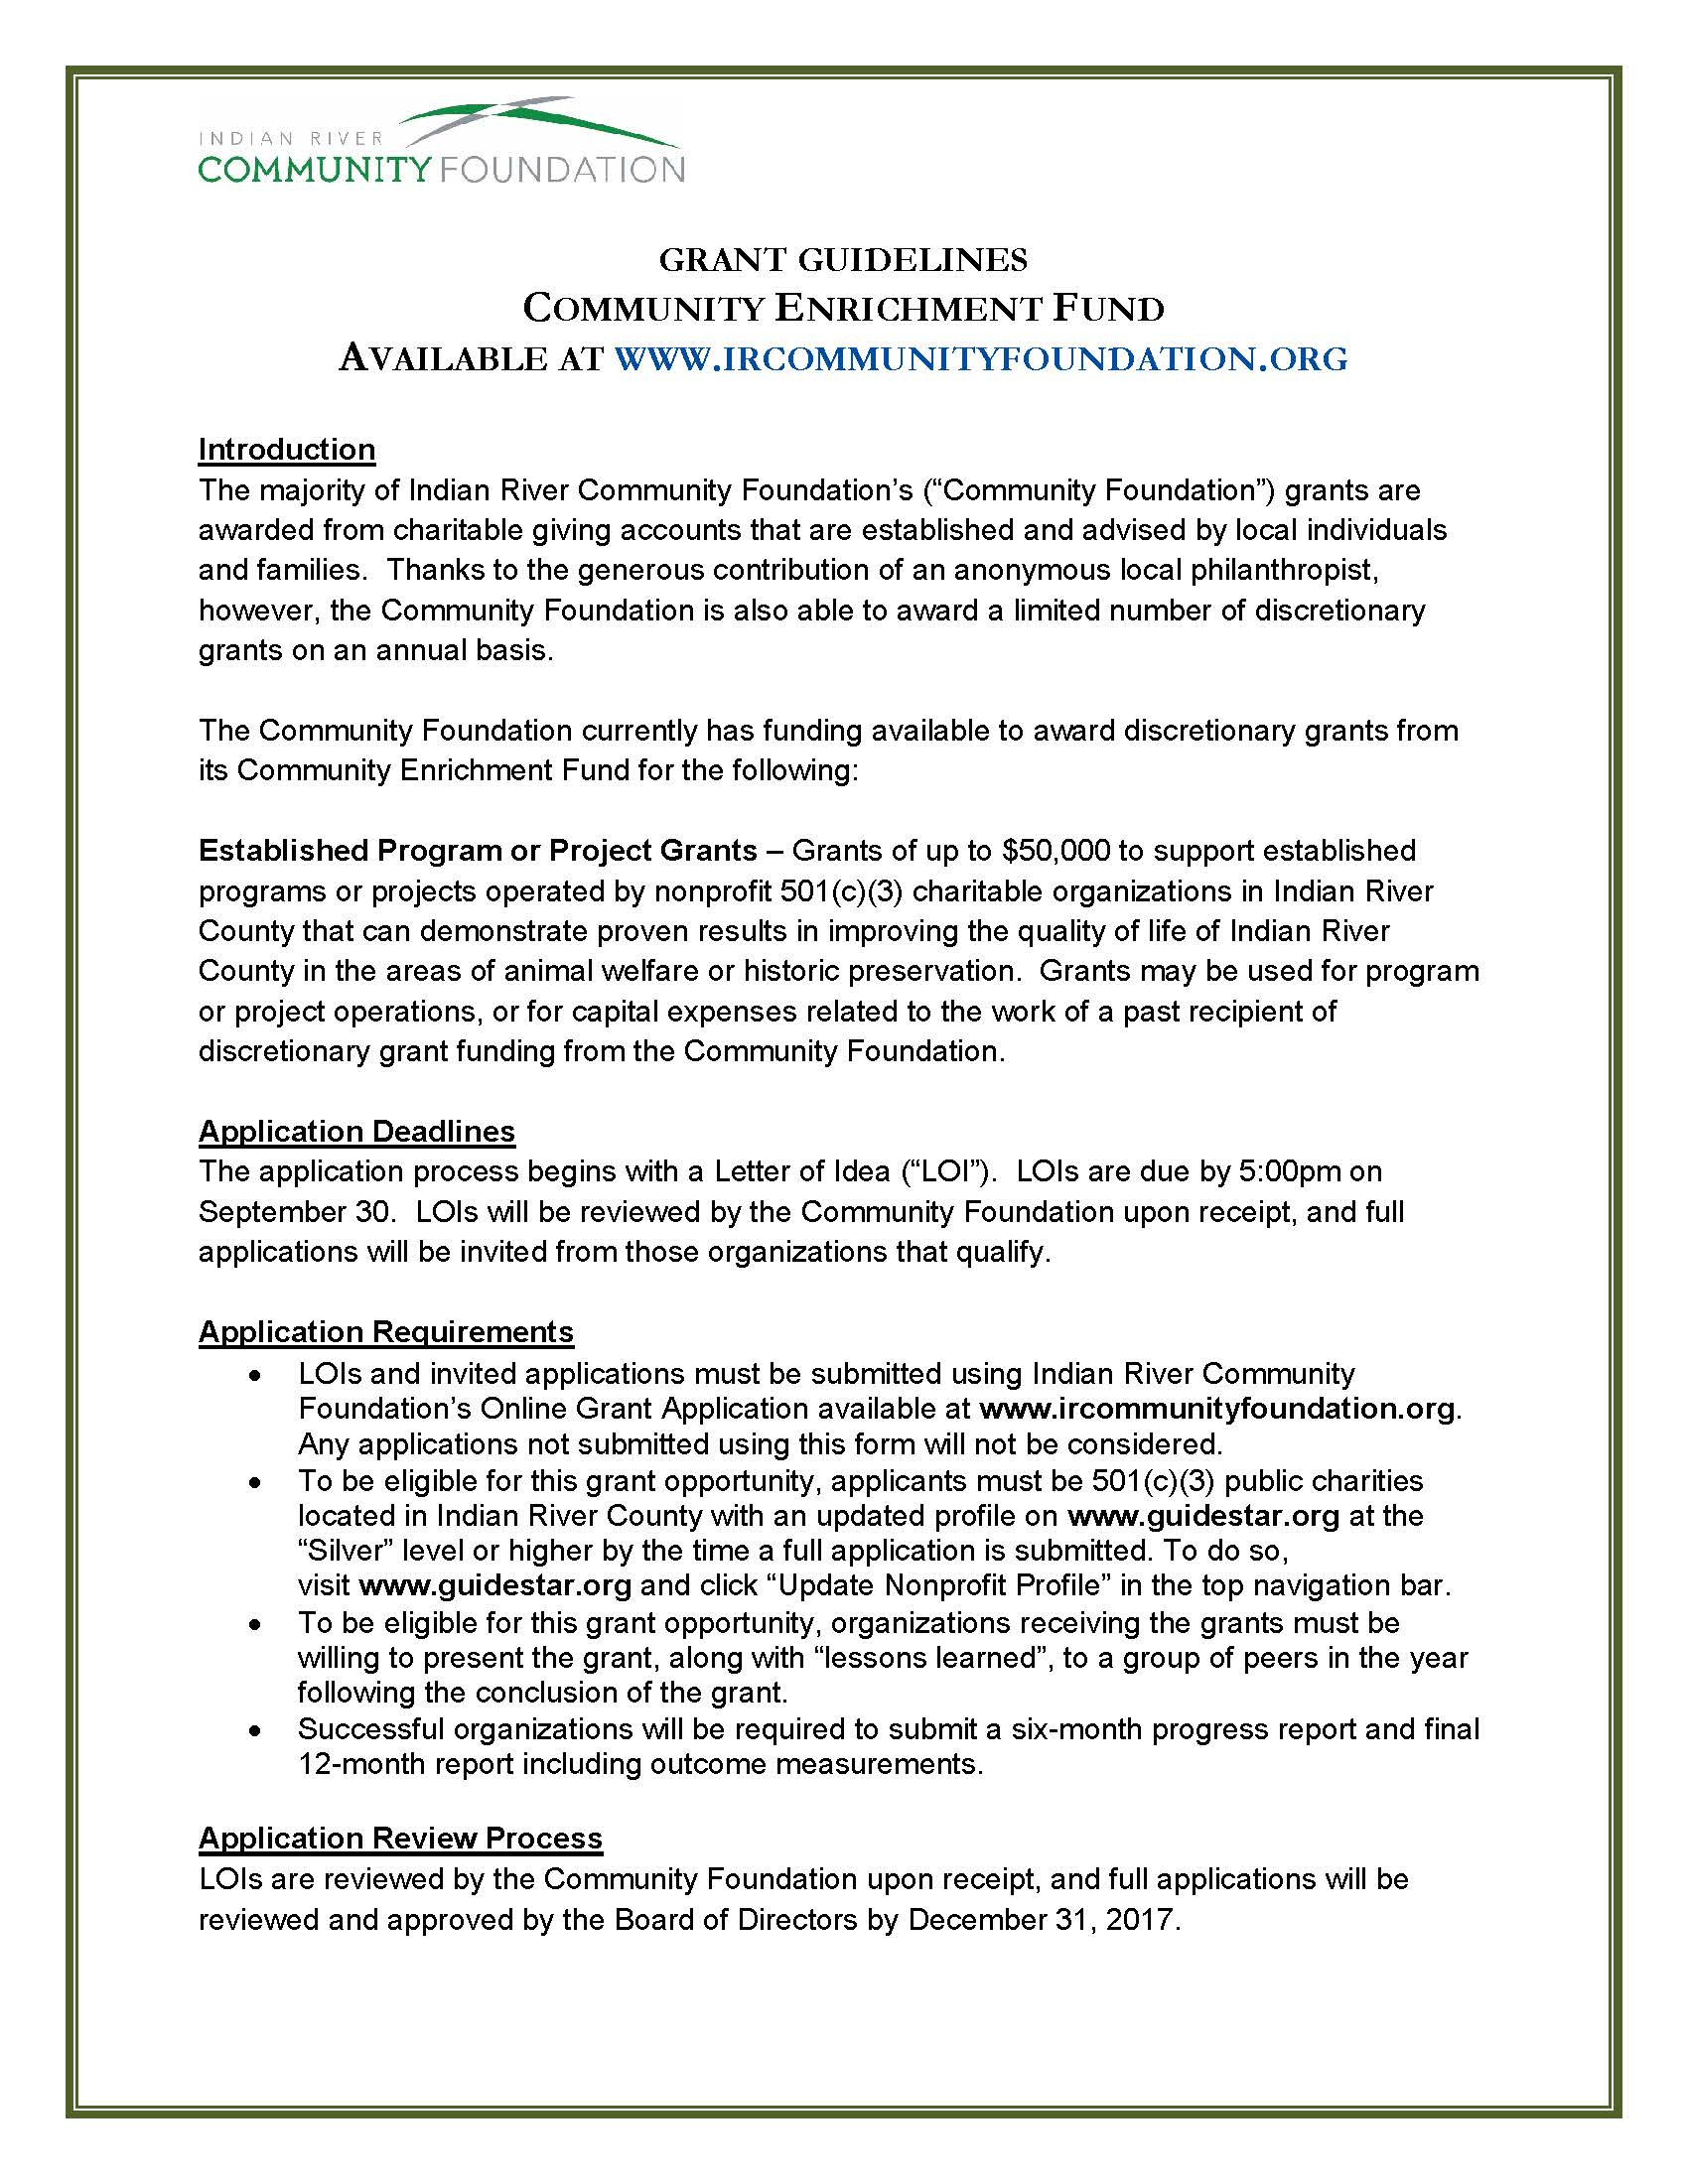 GUIDELINES Competitive Grants Fall 2017_Page_1 - Indian River